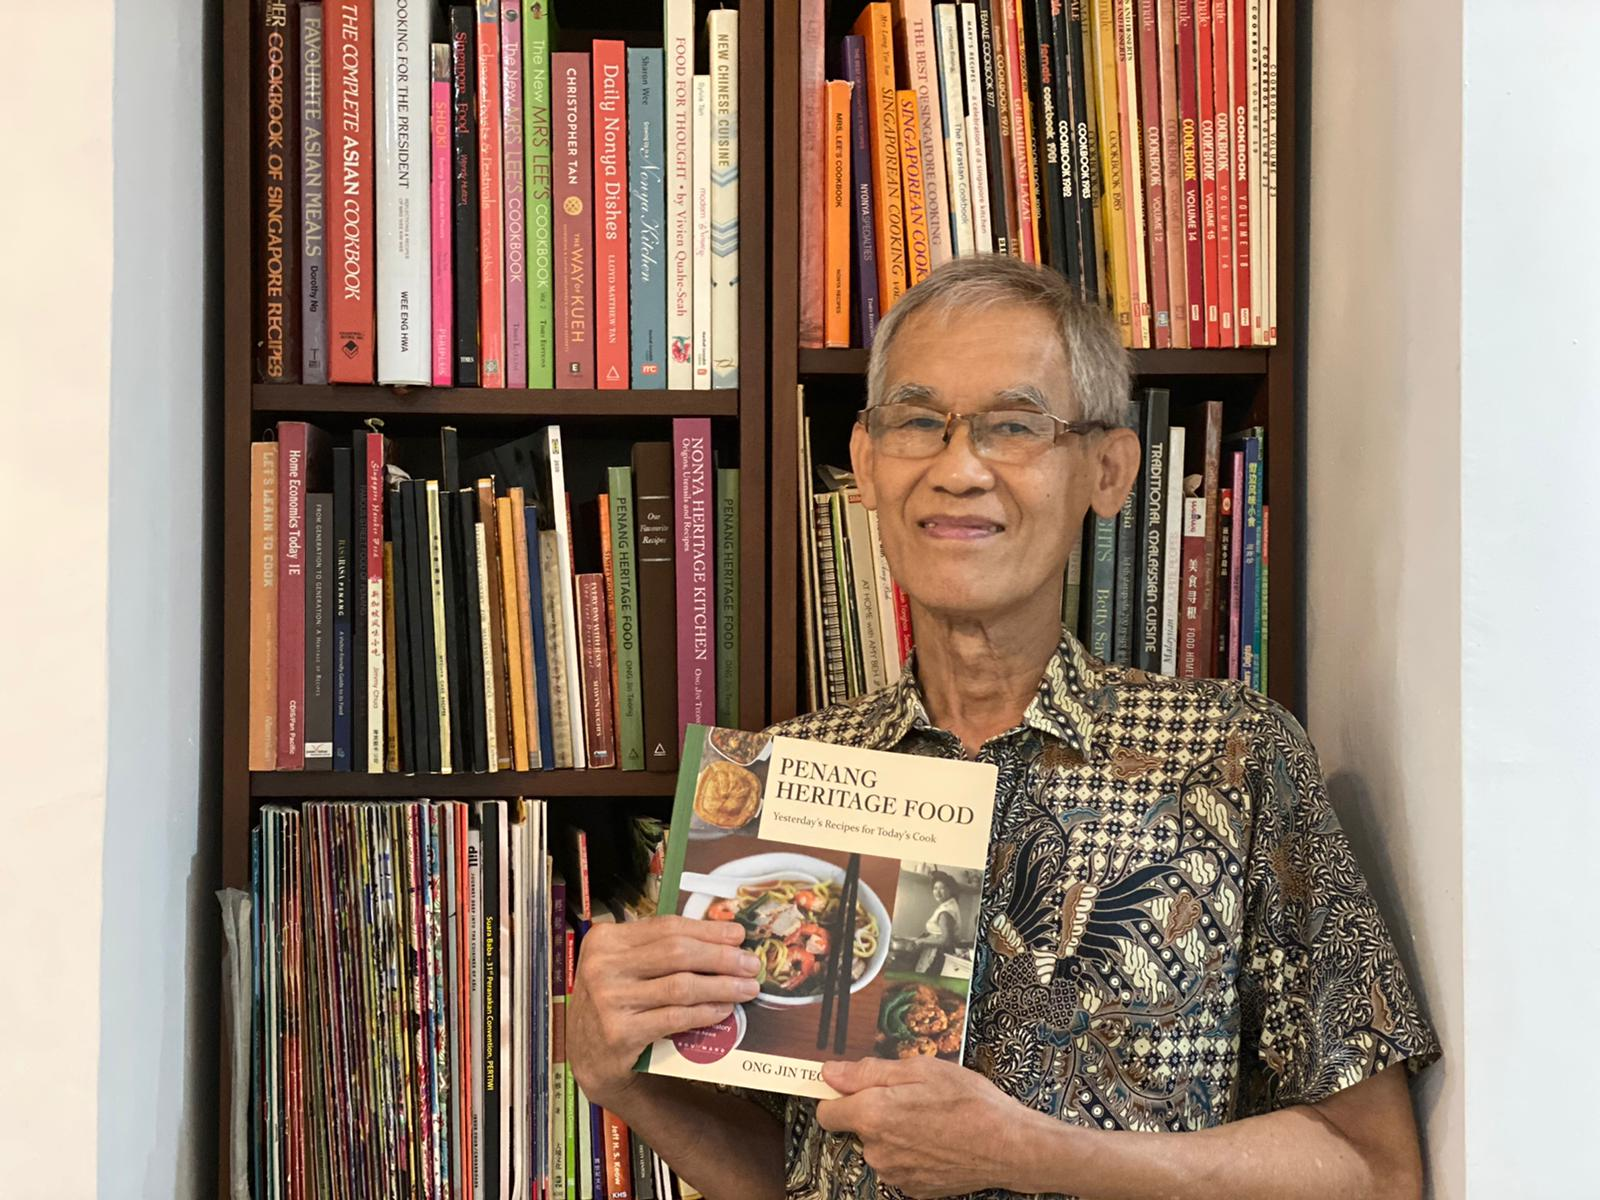 Silver Entrepreneur Interview with Dr Ong of Penang Heritage Food